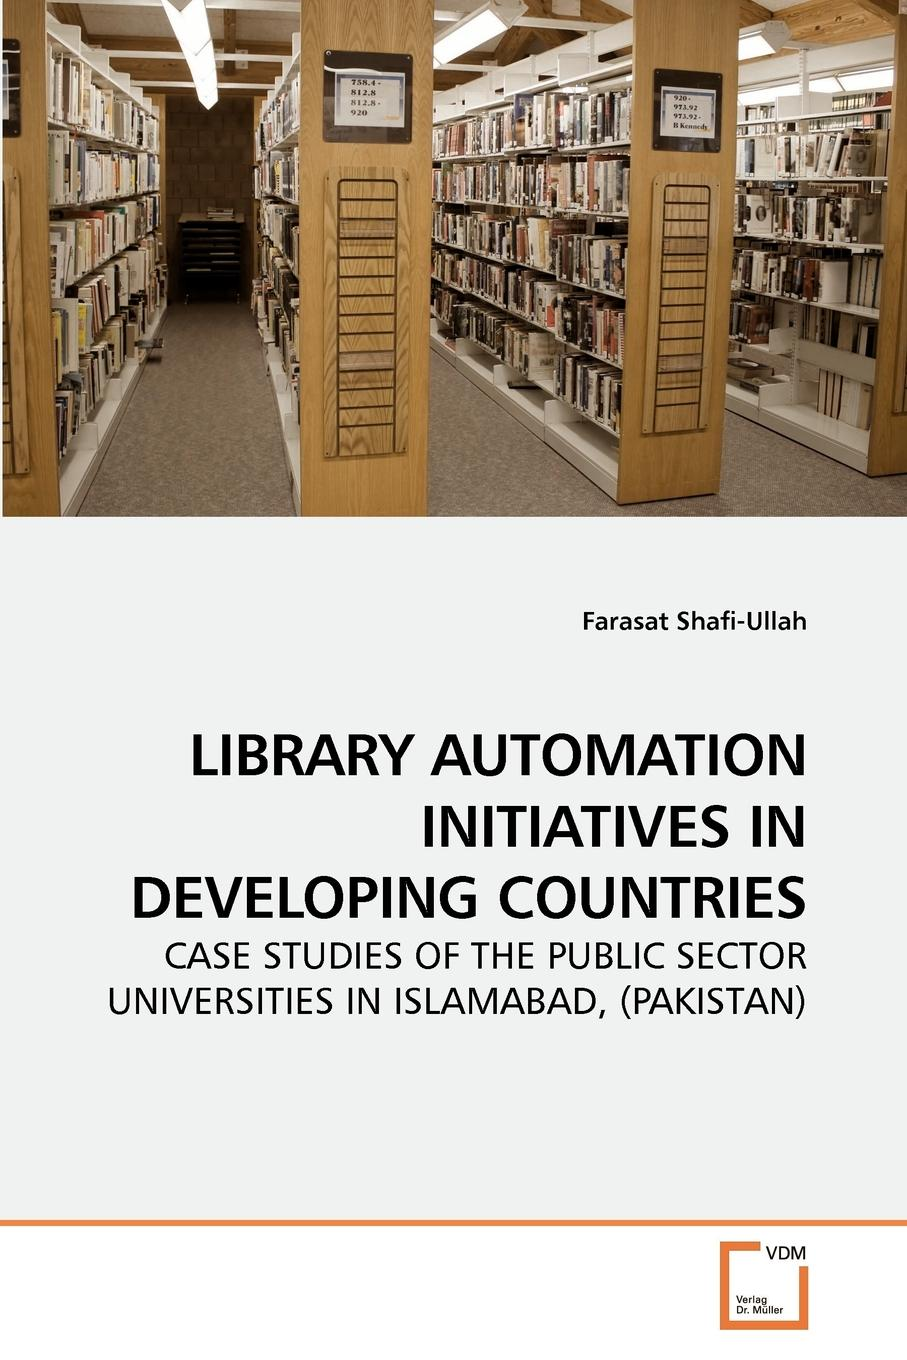 Farasat Shafi-Ullah LIBRARY AUTOMATION INITIATIVES IN DEVELOPING COUNTRIES risk management in education developed and developing countries